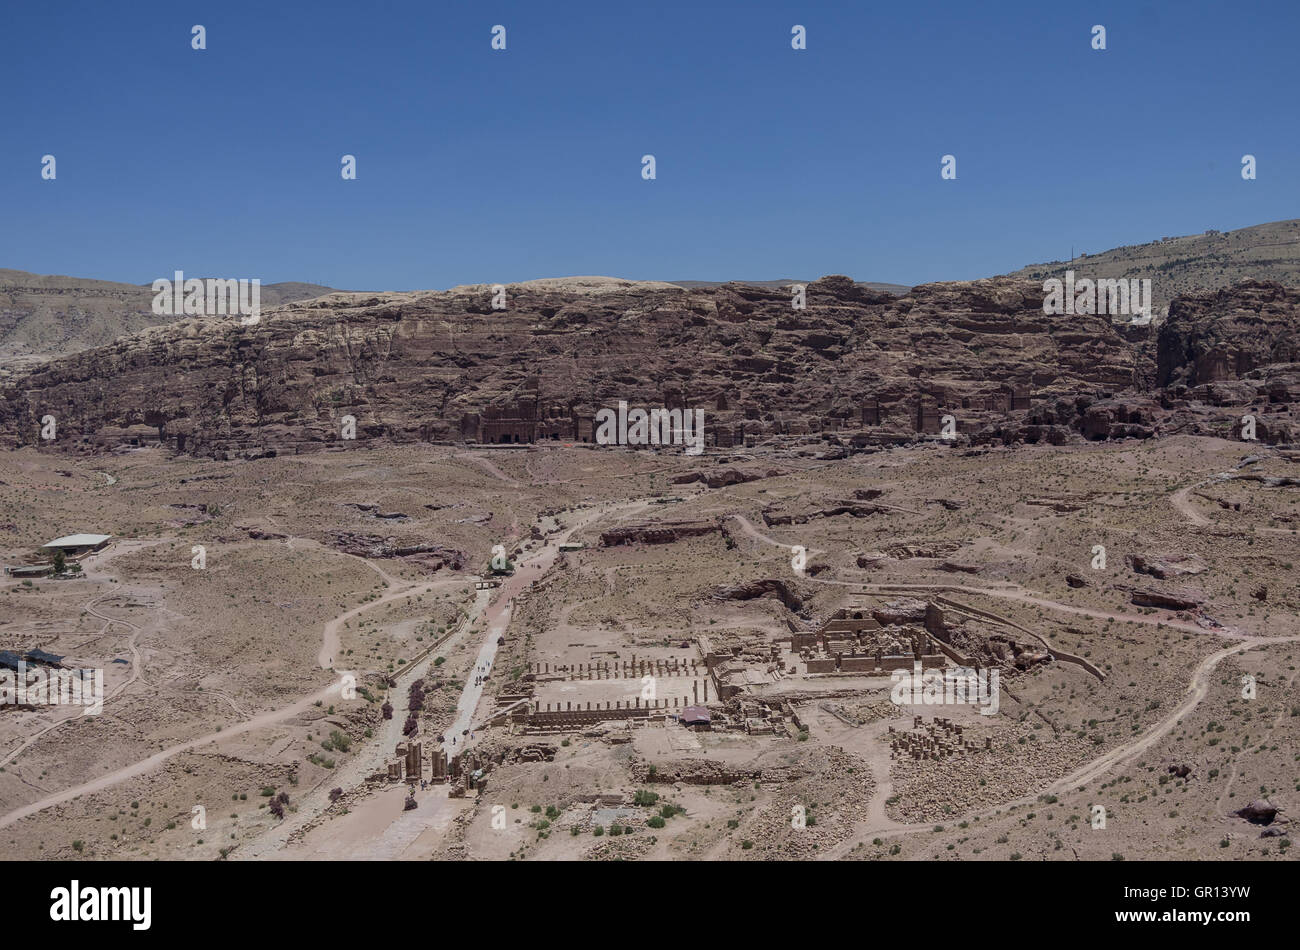 View to Royal Tombs, Cardo Maximus and Great Temple from Al Habis mountain. Panorama of Petra ancient city. Jordan Stock Photo